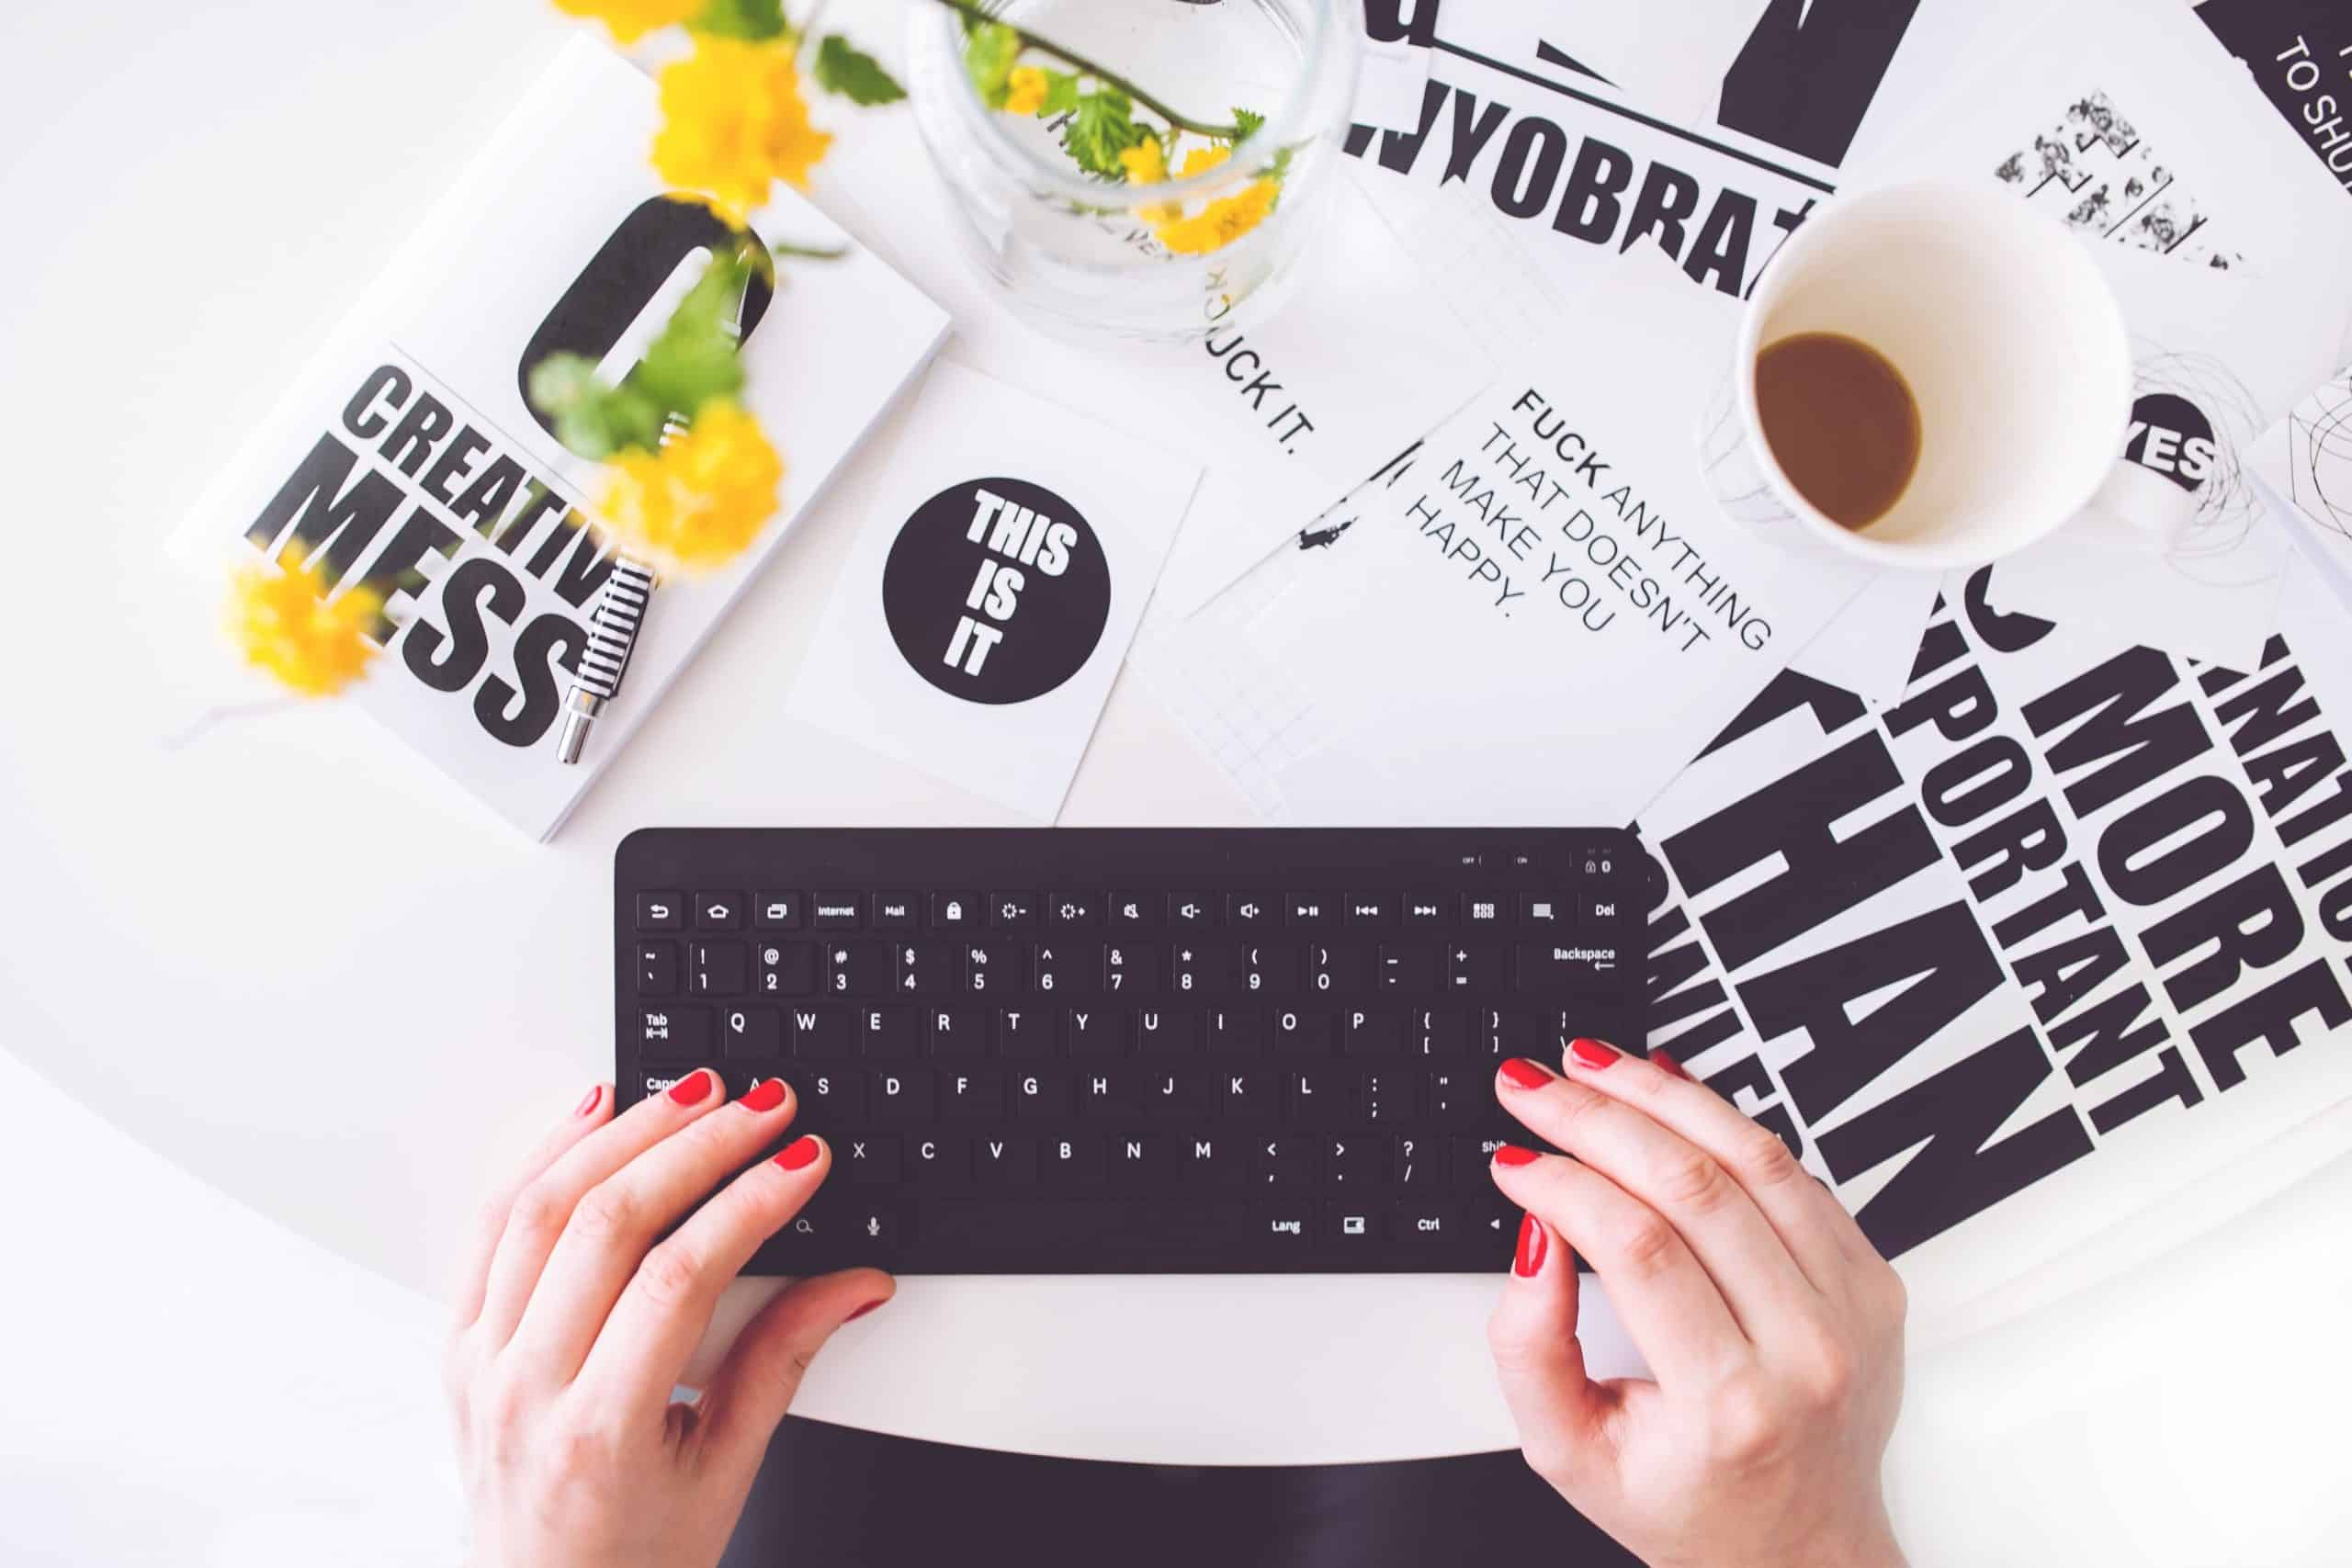 7 MISTAKES TO AVOID BEFORE STARTING A NEW BLOG